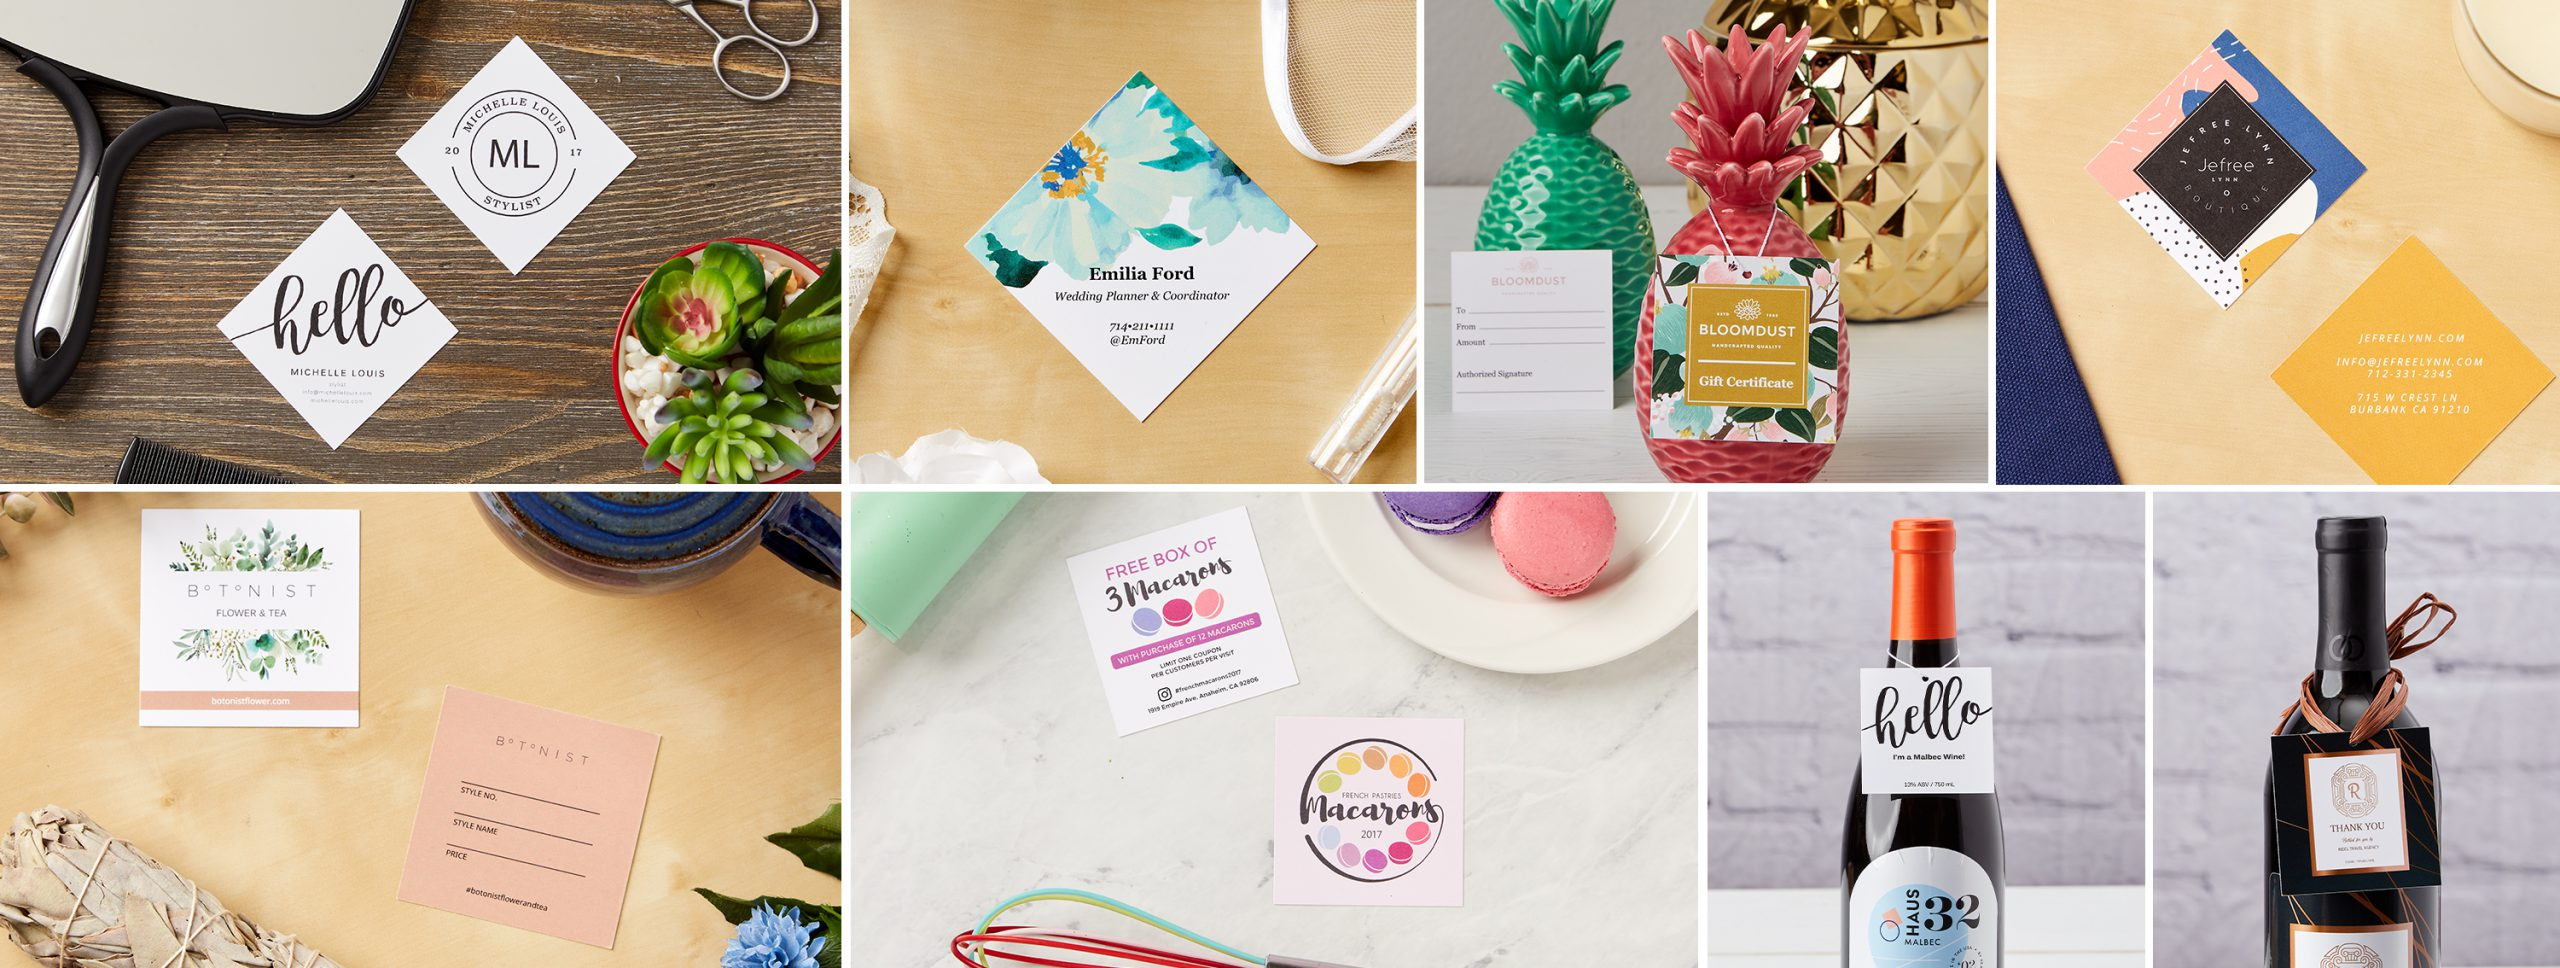 Creative ways to use square business cards for your business